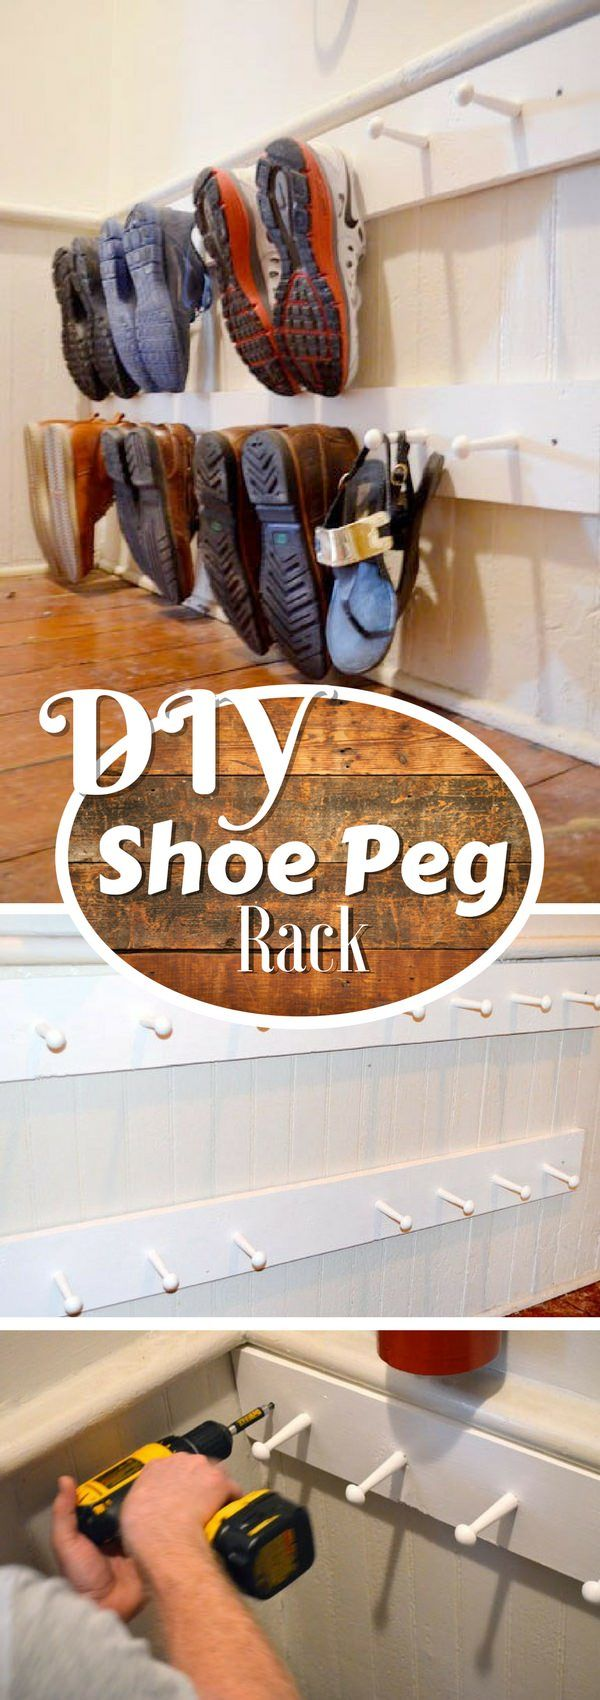 best 25 shoe storage ideas on pinterest garage shoe storage garage shoe shelves and small shoe rack